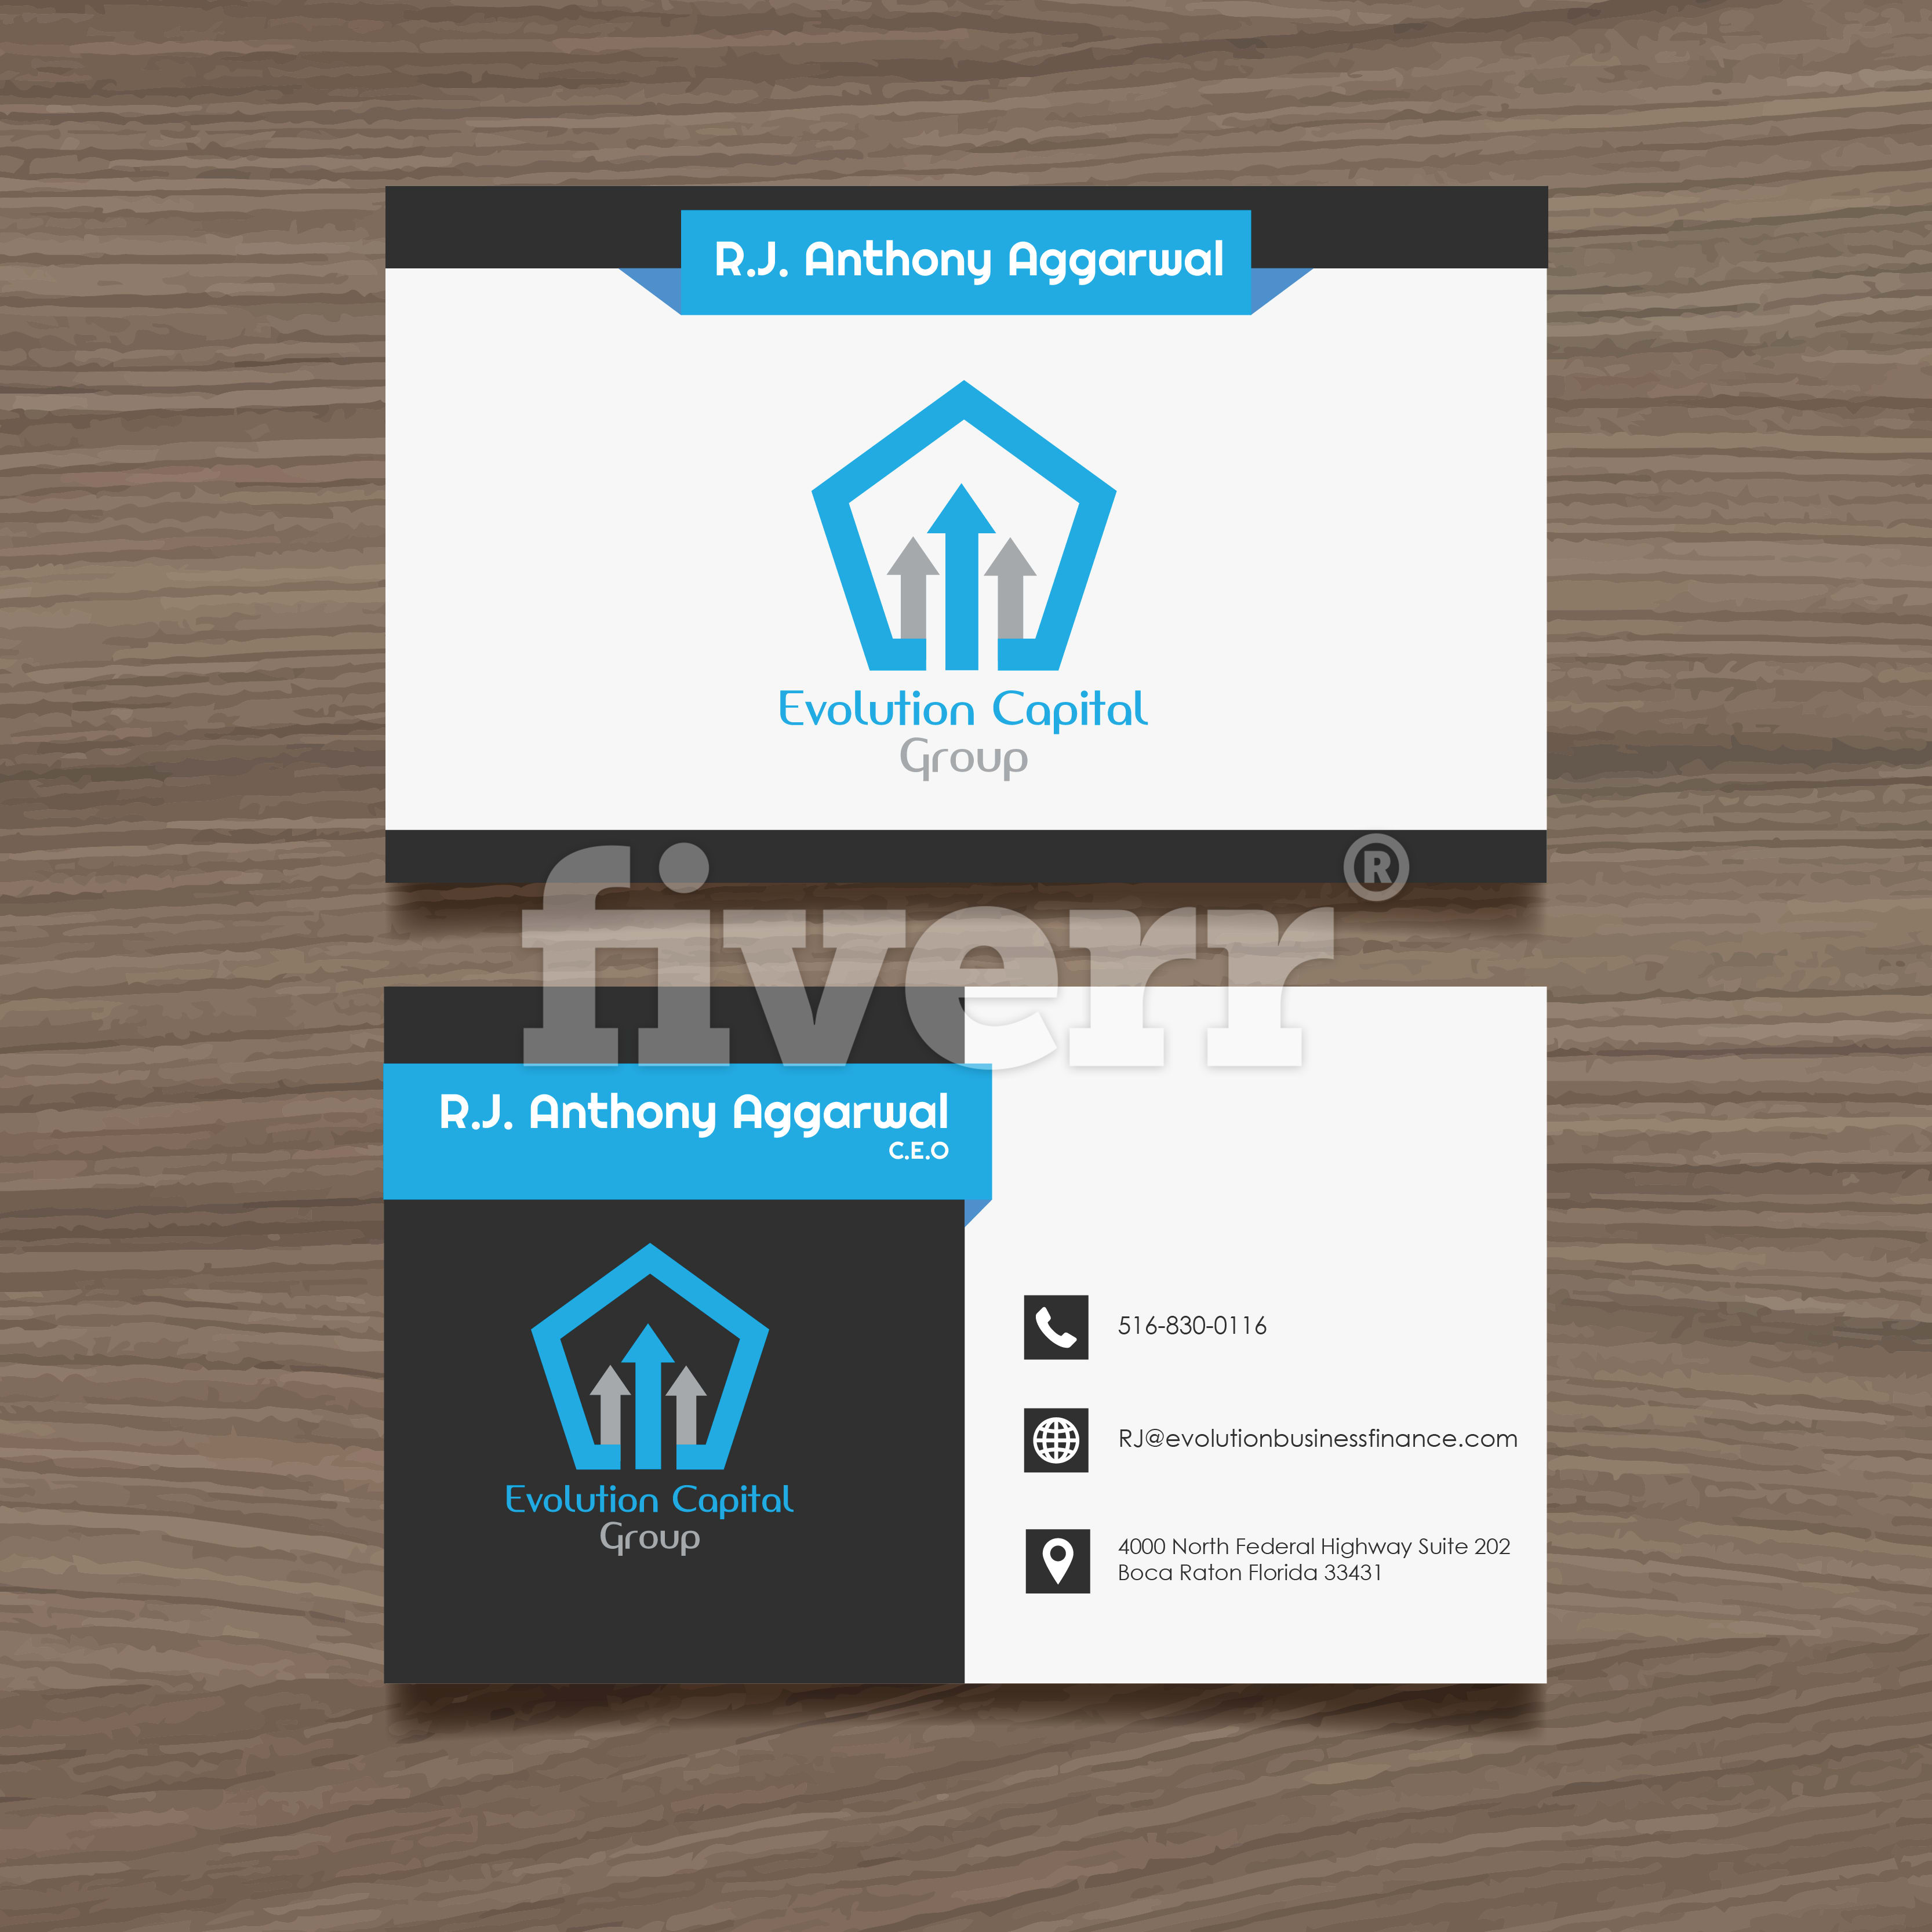 Design double sided professional business card stationery by design double sided professional business card stationery by shaikhsahab reheart Choice Image